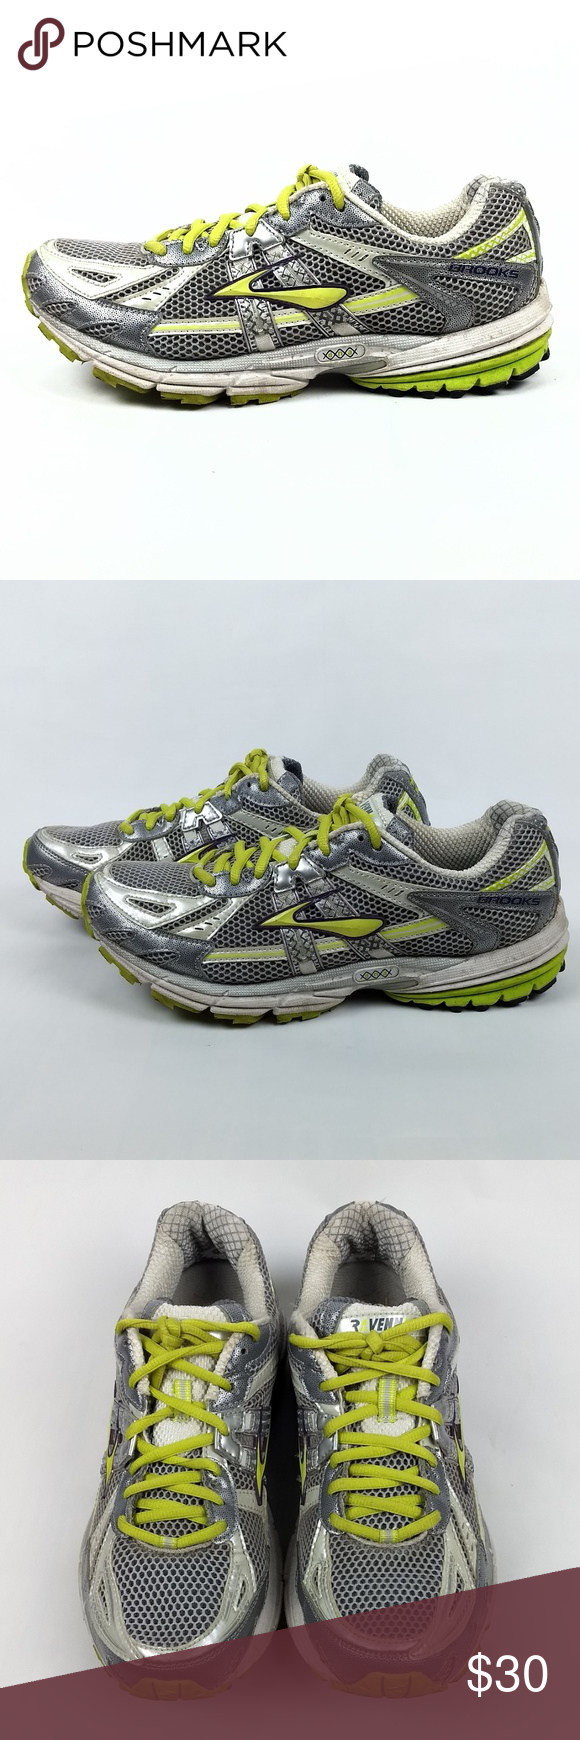 Brooks Ravenna 2 Running Shoes Size 10 5 Brooks Ravenna 2 Women S Athletic Running Shoes Model 1200831b893 Color Silver N Running Shoes Shoes Brooks Shoes